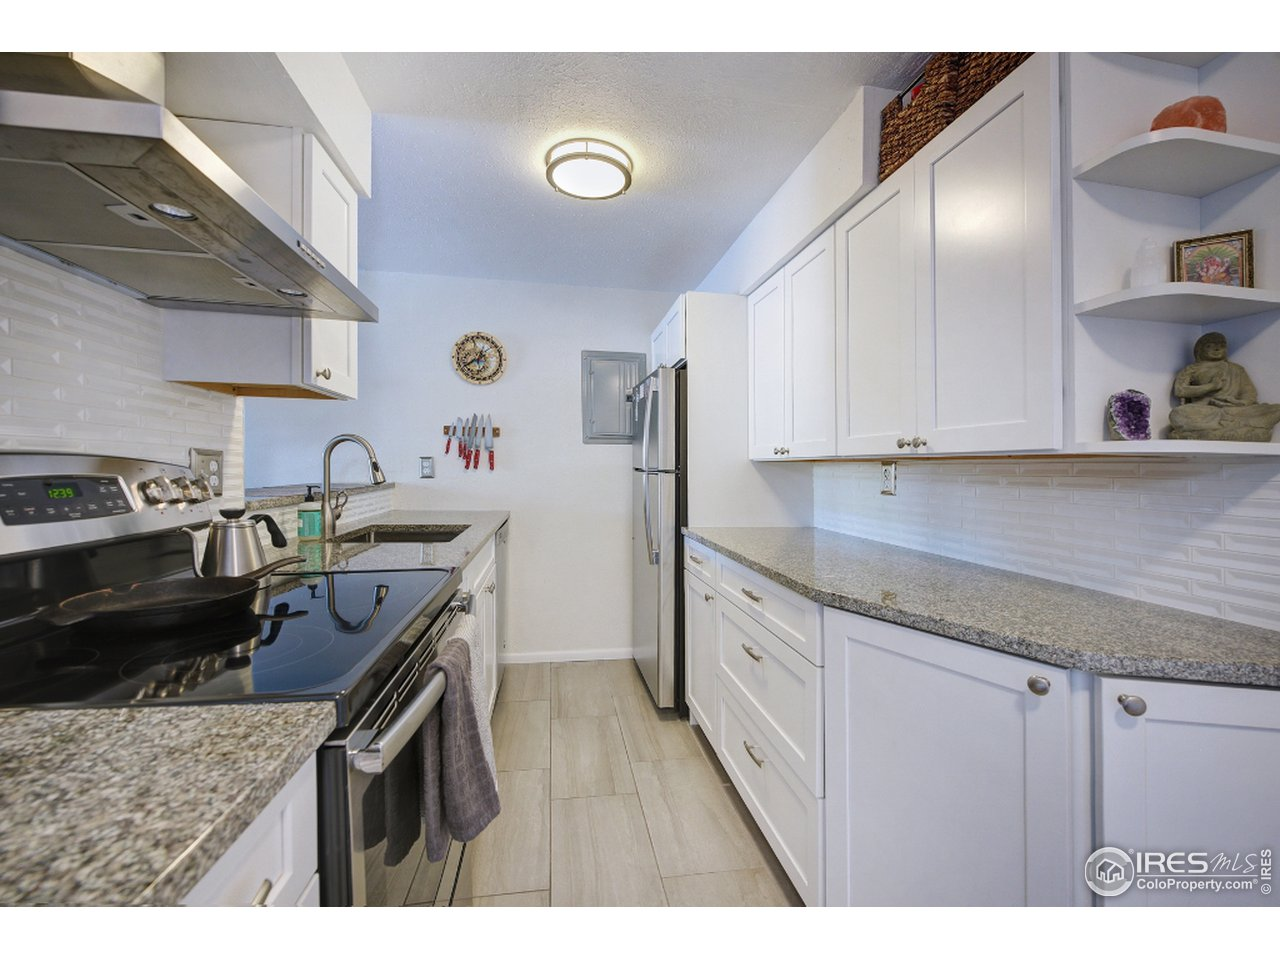 Complete remodeled kitchen with custom cabinets